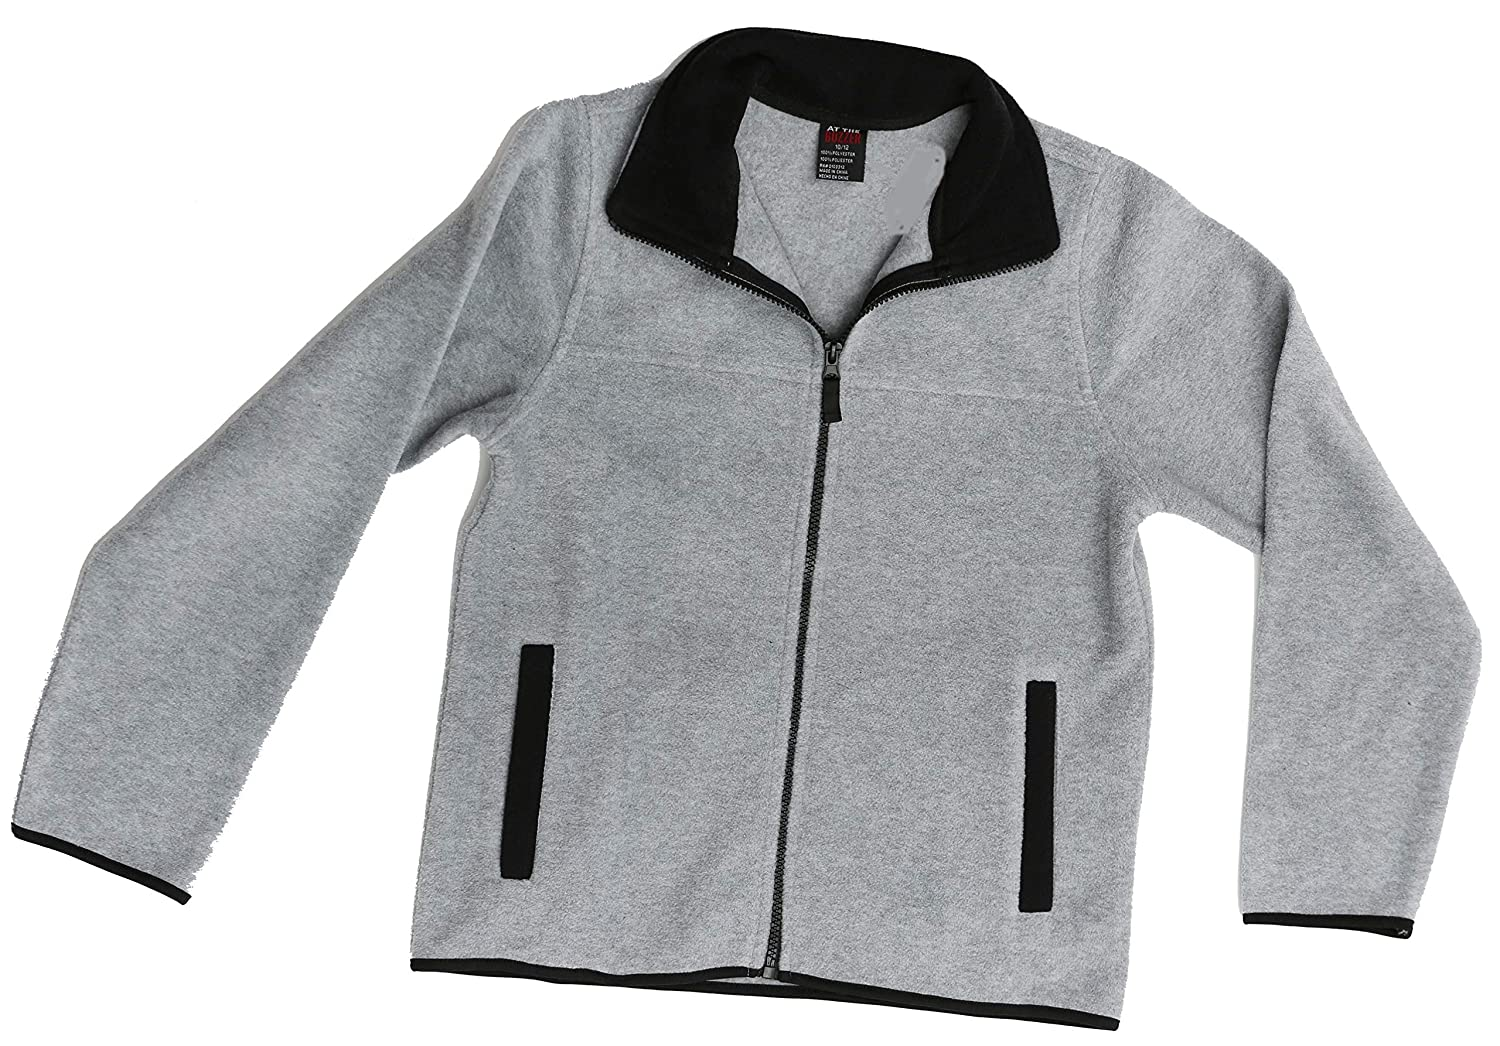 Amazon.com: At The Buzzer - Chaqueta polar para niño: Clothing